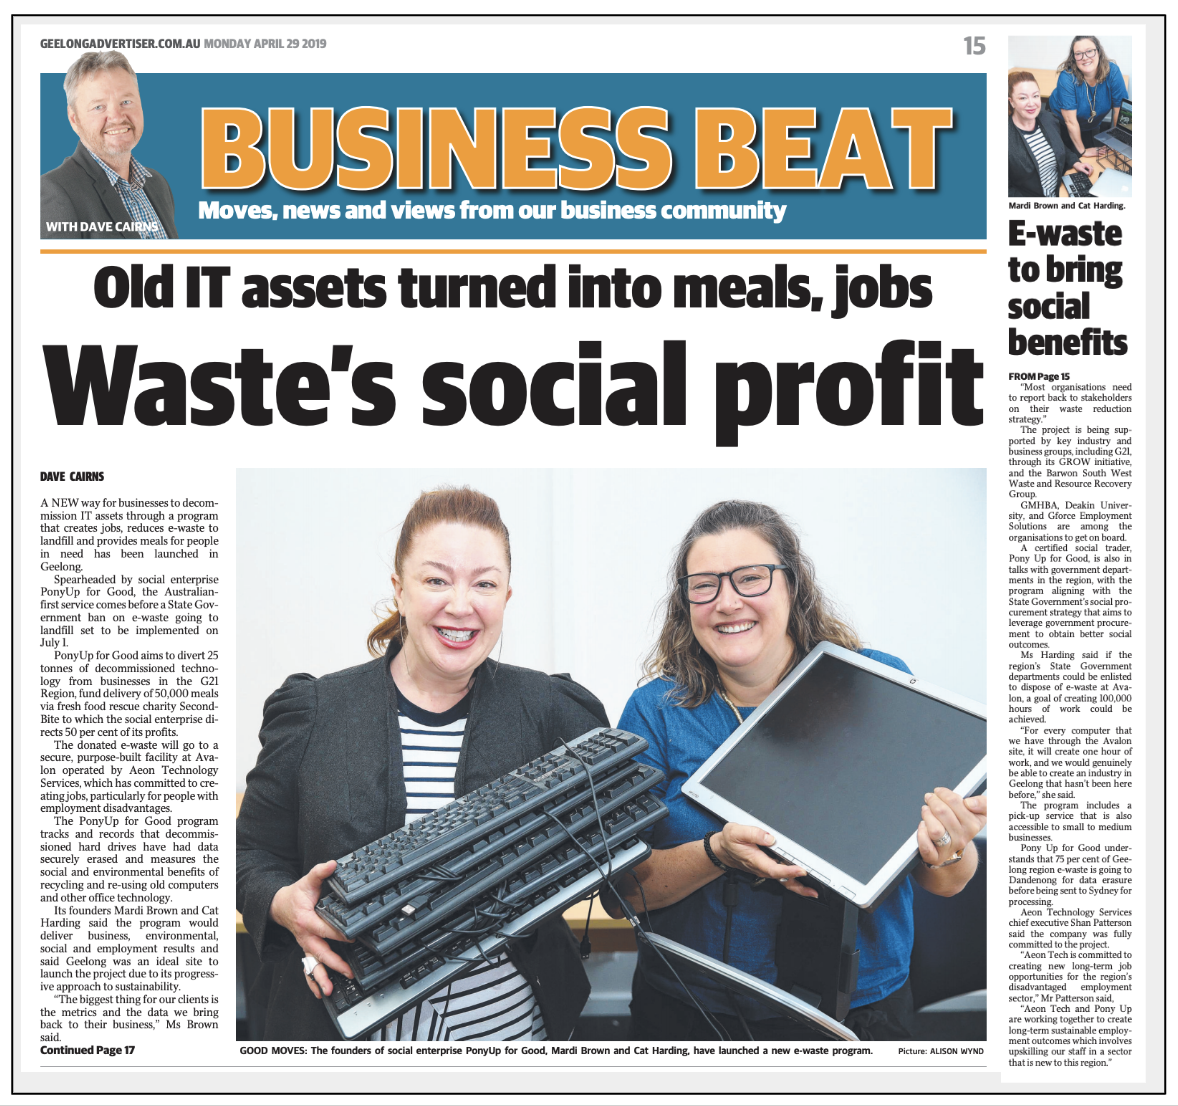 ARTICLE:  DAVID CAIRNS  -  GEELONG ADVERTISER - BUSINESS BEAT - MONDAY 29, APRIL, 2019